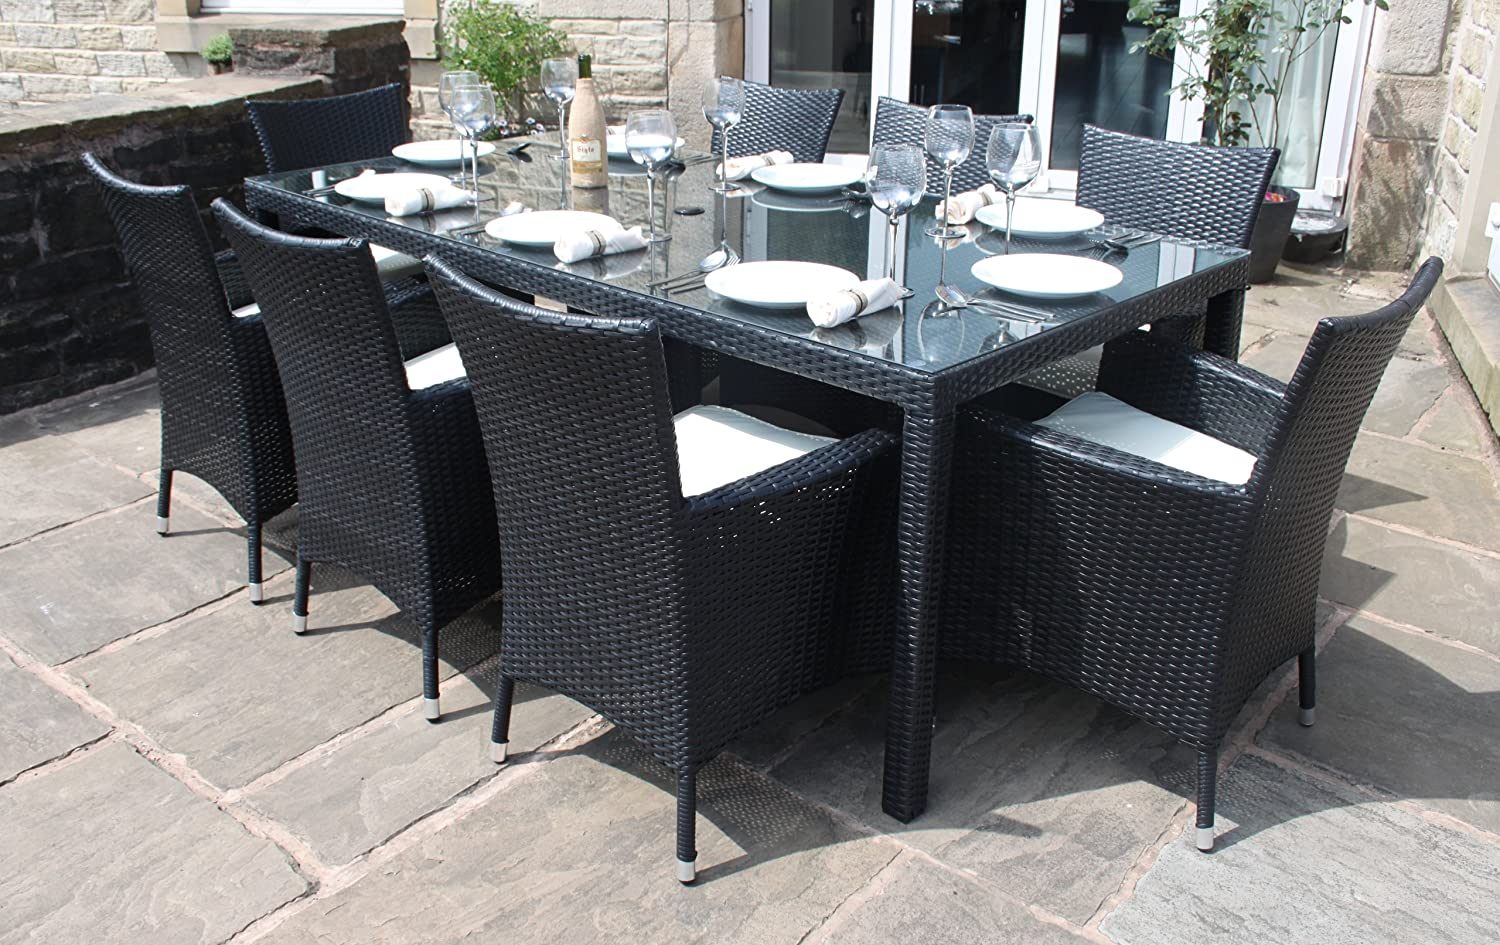 Marvelous Rattan Outdoor 8 Seater Garden Furniture Dining Set In Black: Amazon.co.uk:  Garden U0026 Outdoors